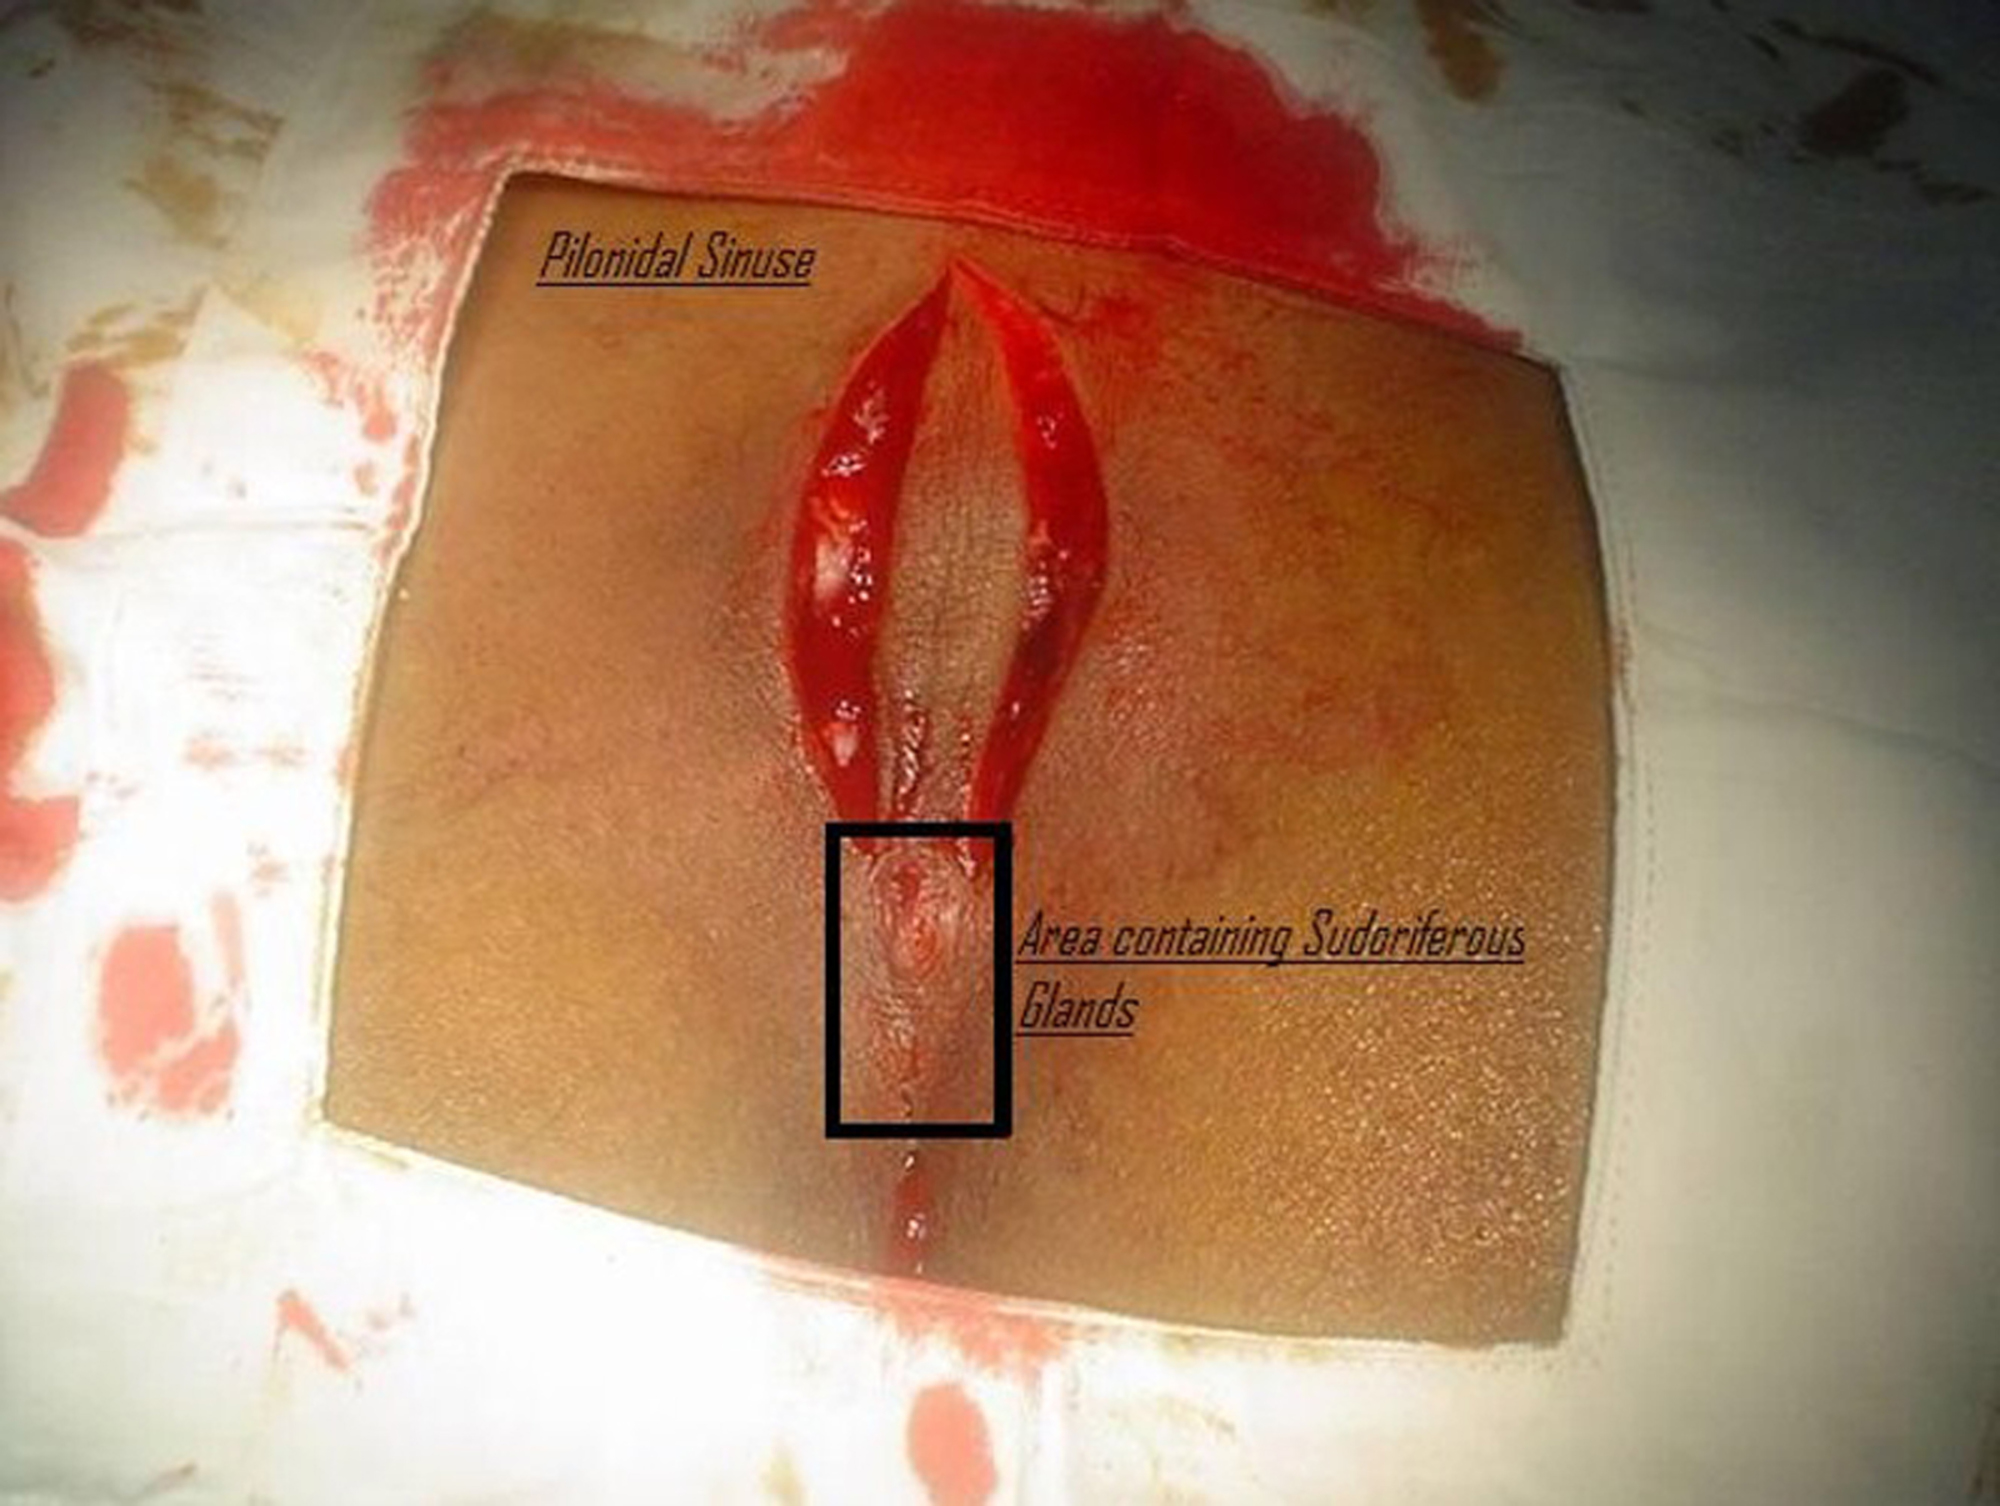 Cureus | Excision of the Gluteal Cleft Pilonidal Sinus, Its